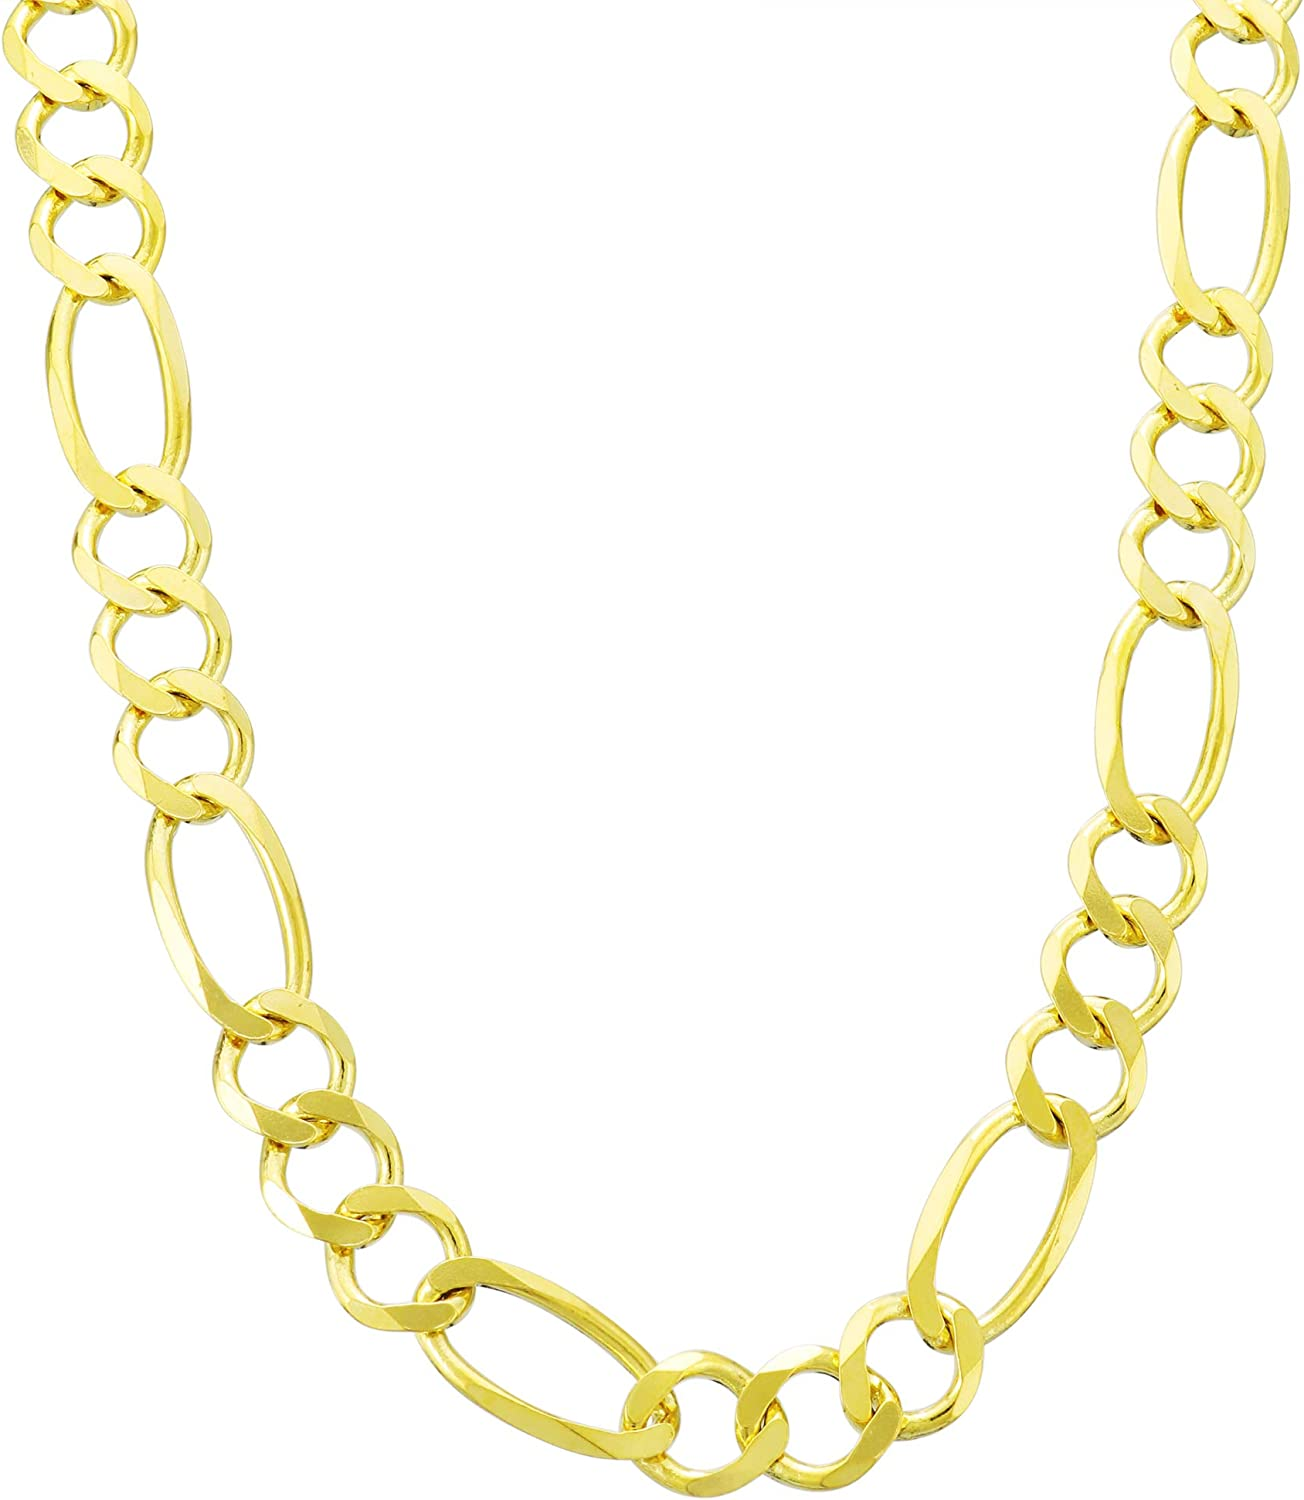 """10K Solid Yellow Gold Figaro Chain Link Pendant Necklace 16/"""" 18/"""" 20/"""" 22/"""" 24/"""" 30/"""""""